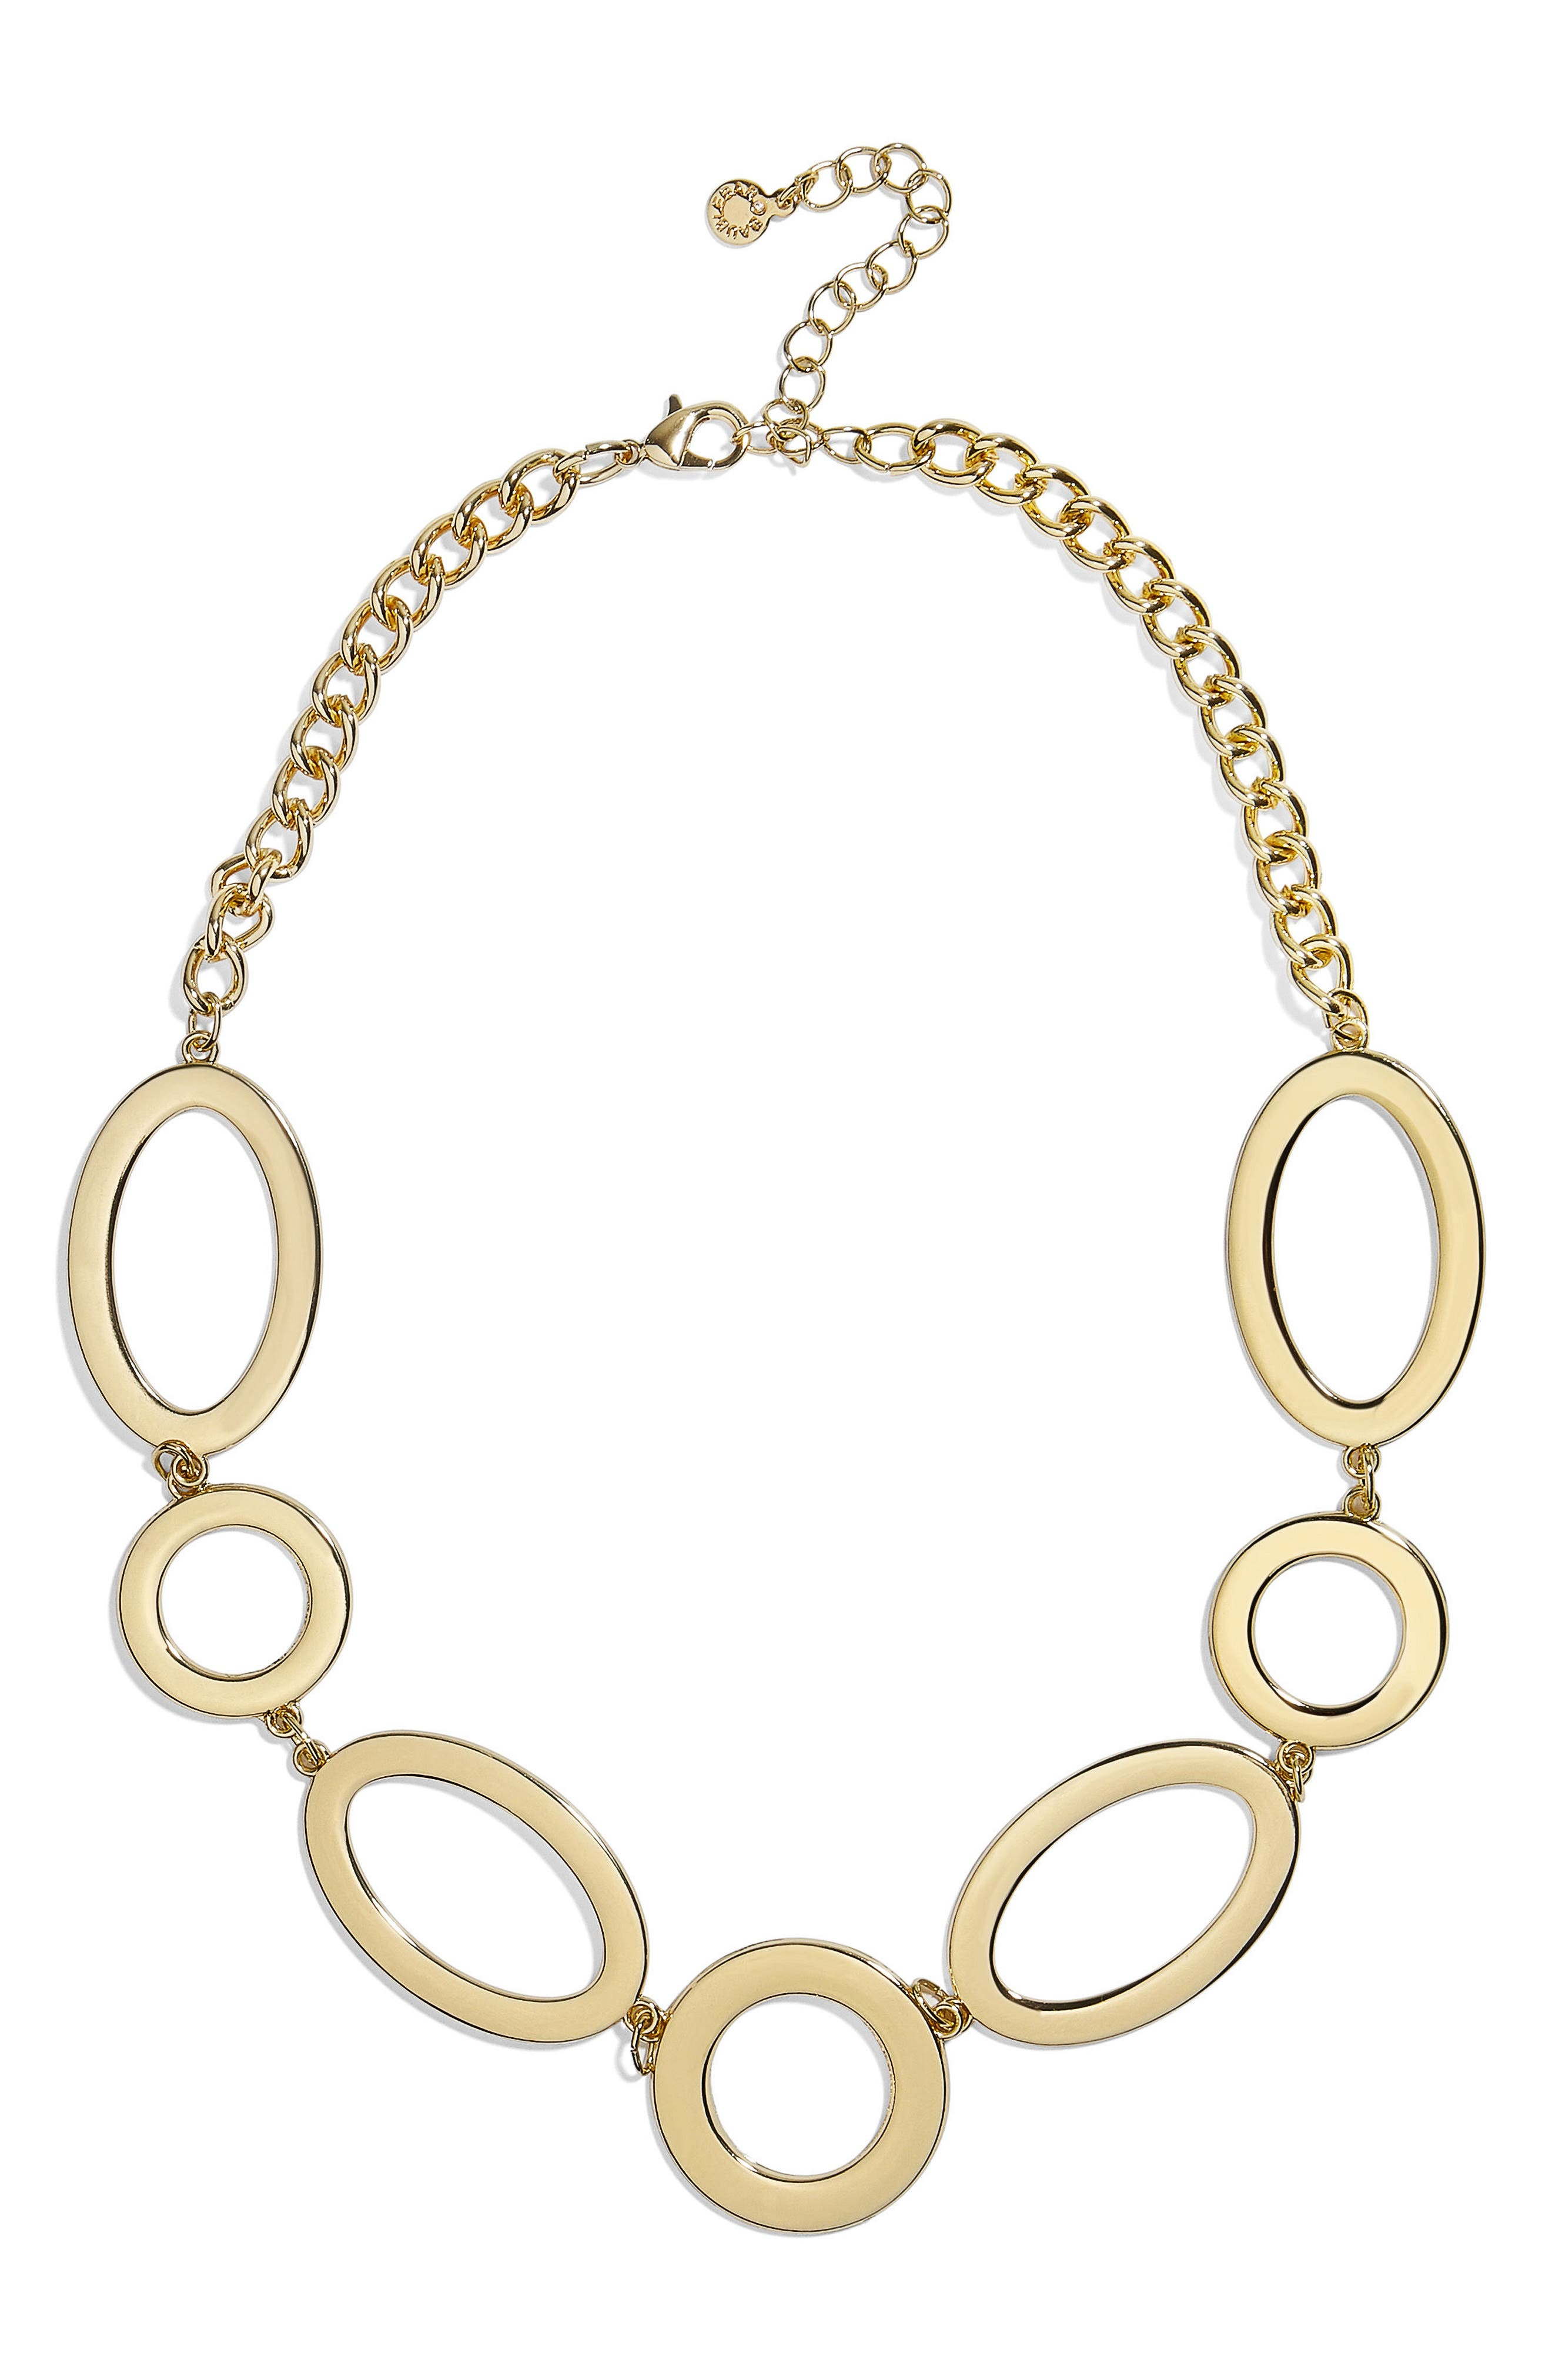 Romona Oval & Circle Statement Necklace,                             Main thumbnail 1, color,                             Gold